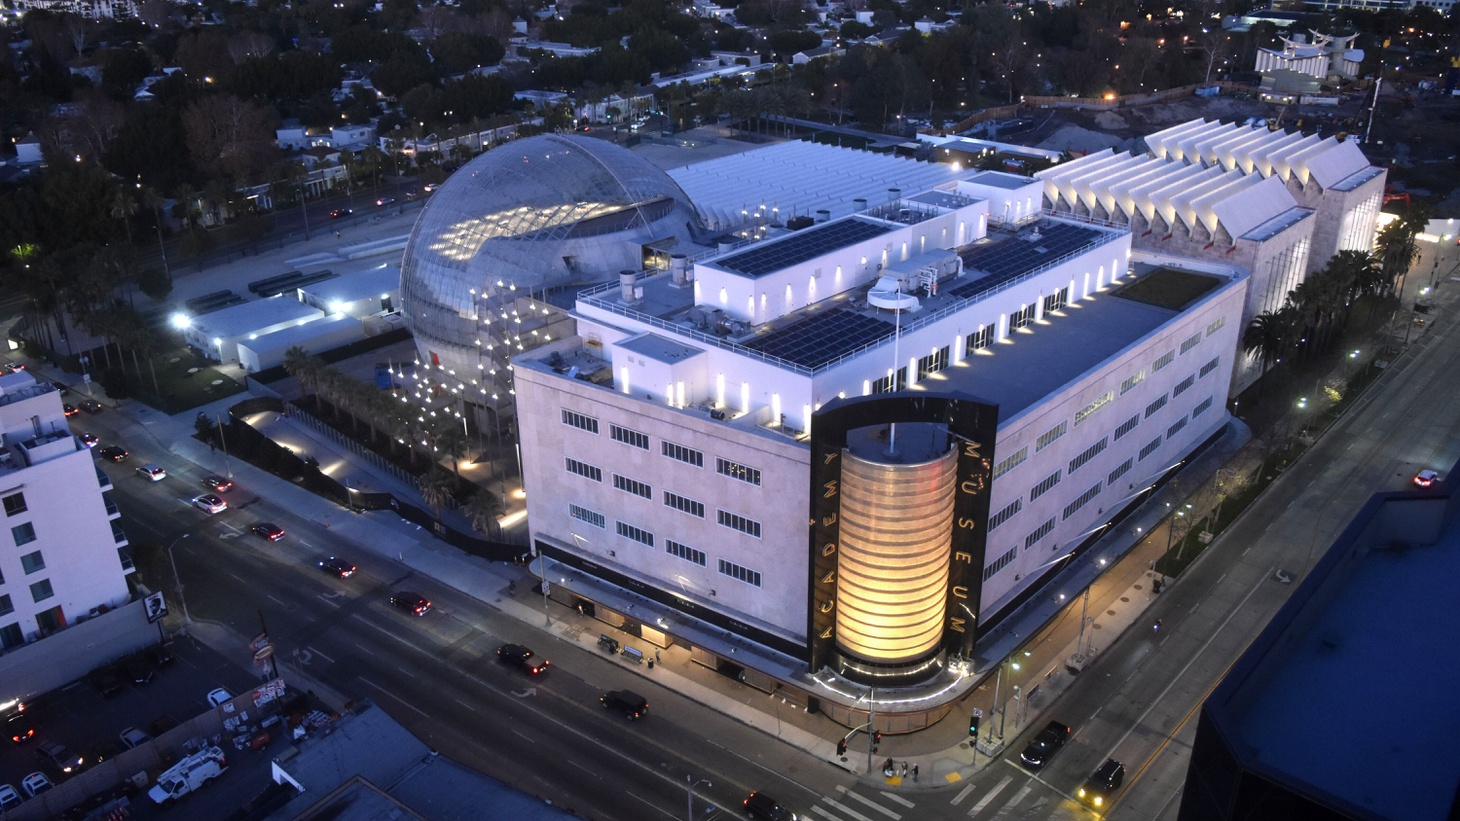 The Academy Museum of Motion Pictures, which sits on the corner of Wilshire and Fairfax, opened on September 30.